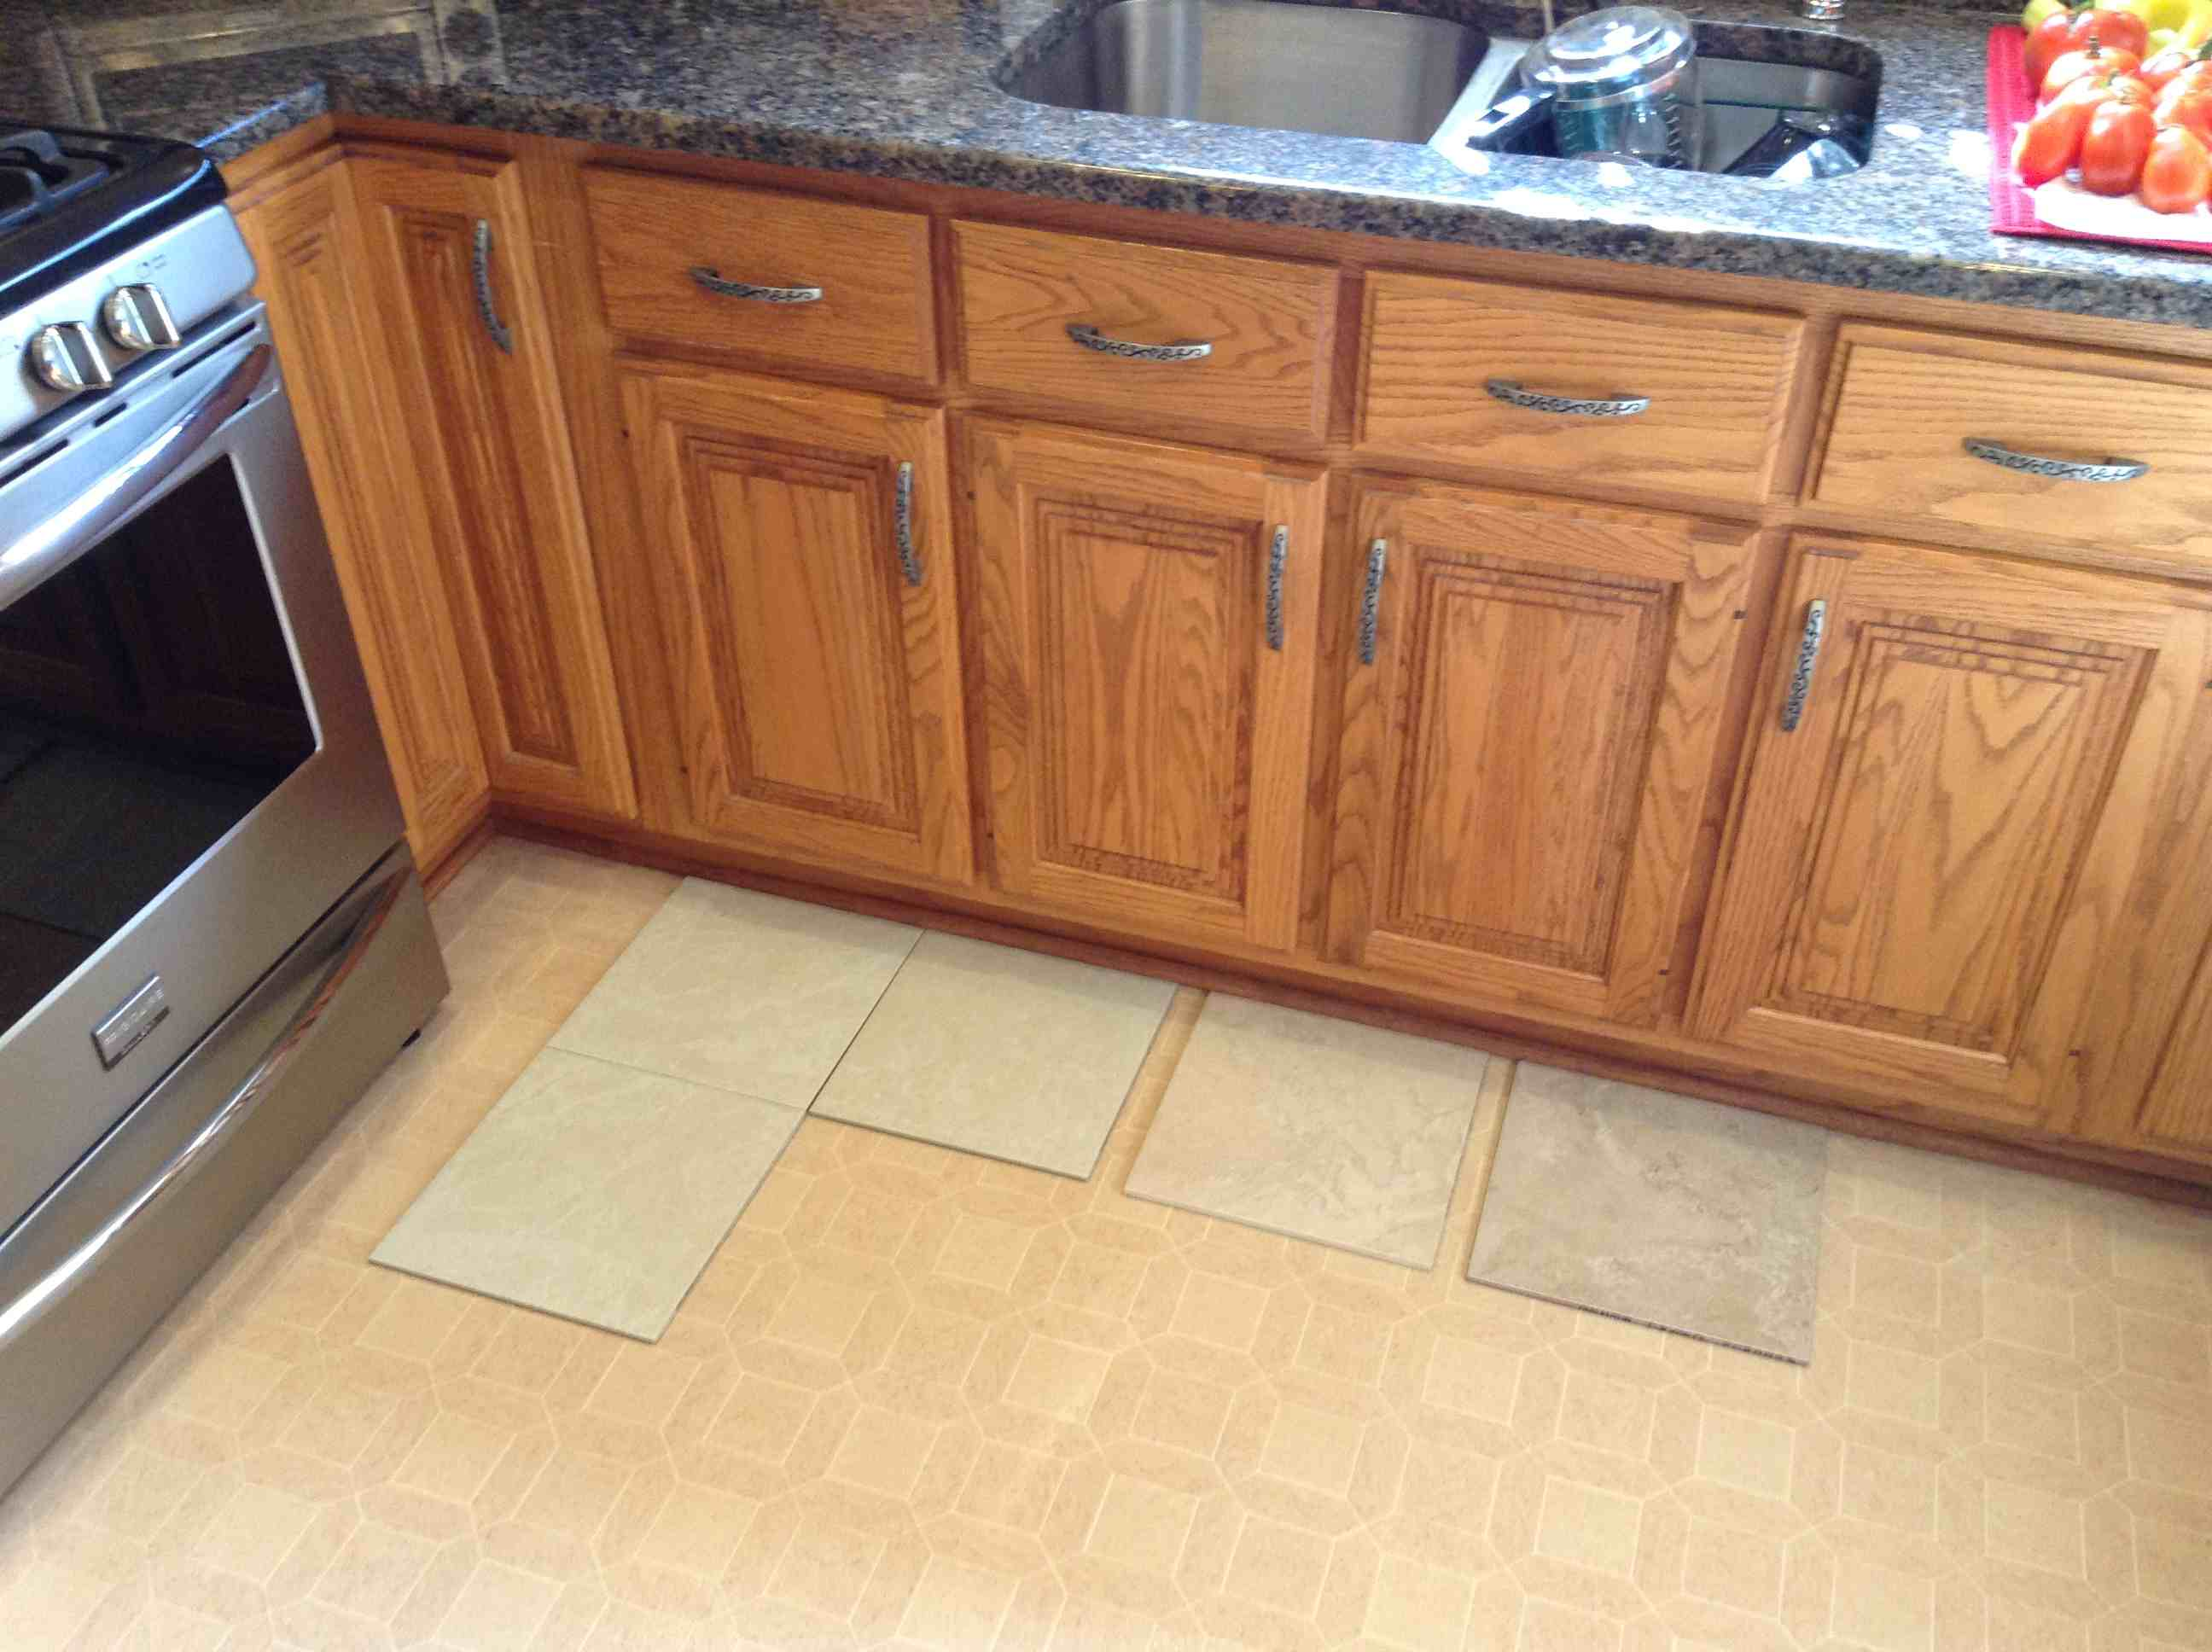 Kitchen Flooring Advice for A Home That's about to Sell